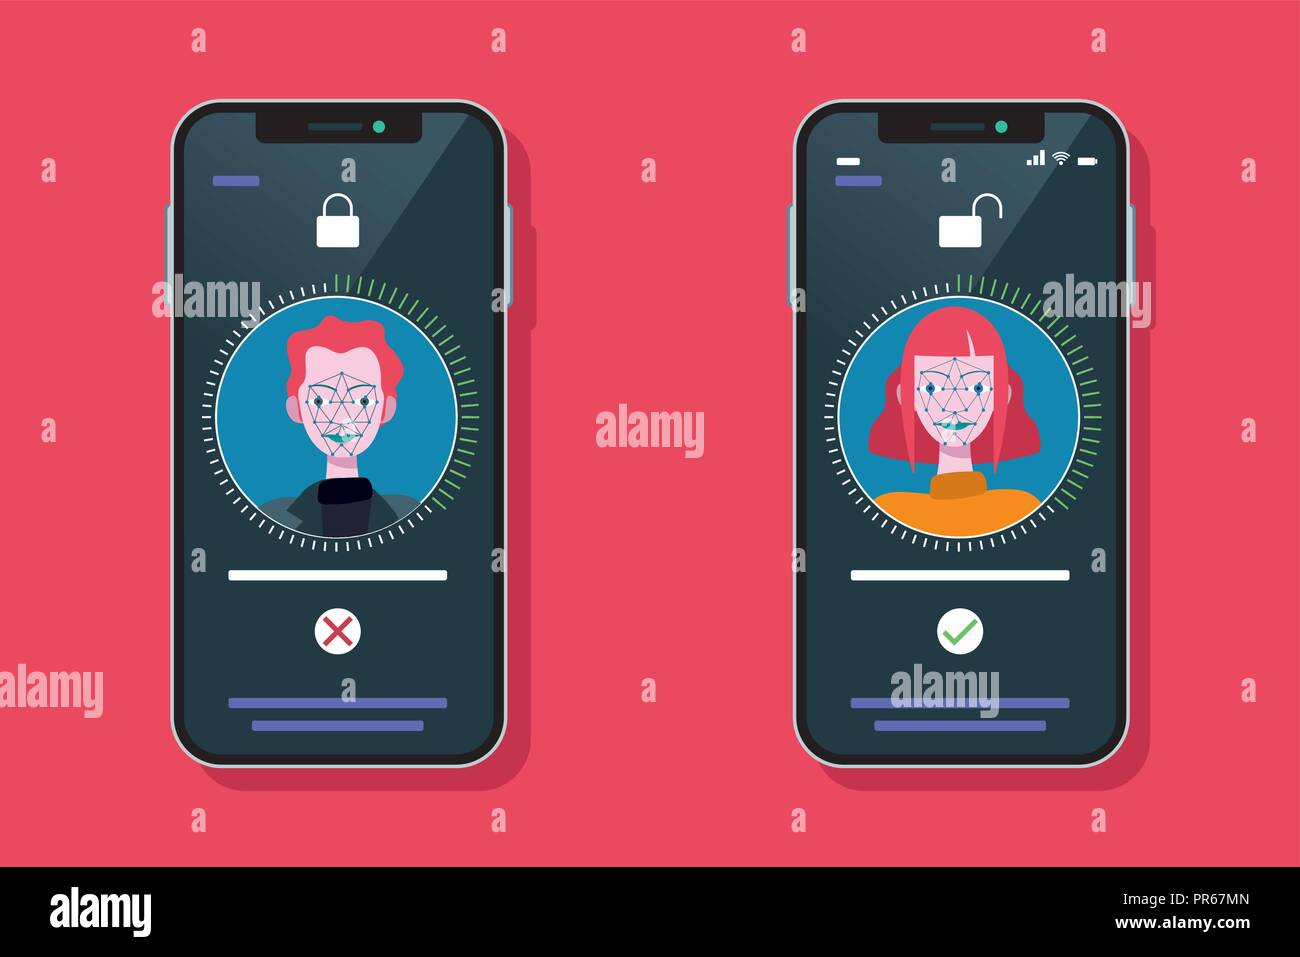 Facial Recognition Technology used with a Smart Phone. Scanning og the face of a man and a woman for facial recognition. - Stock Vector